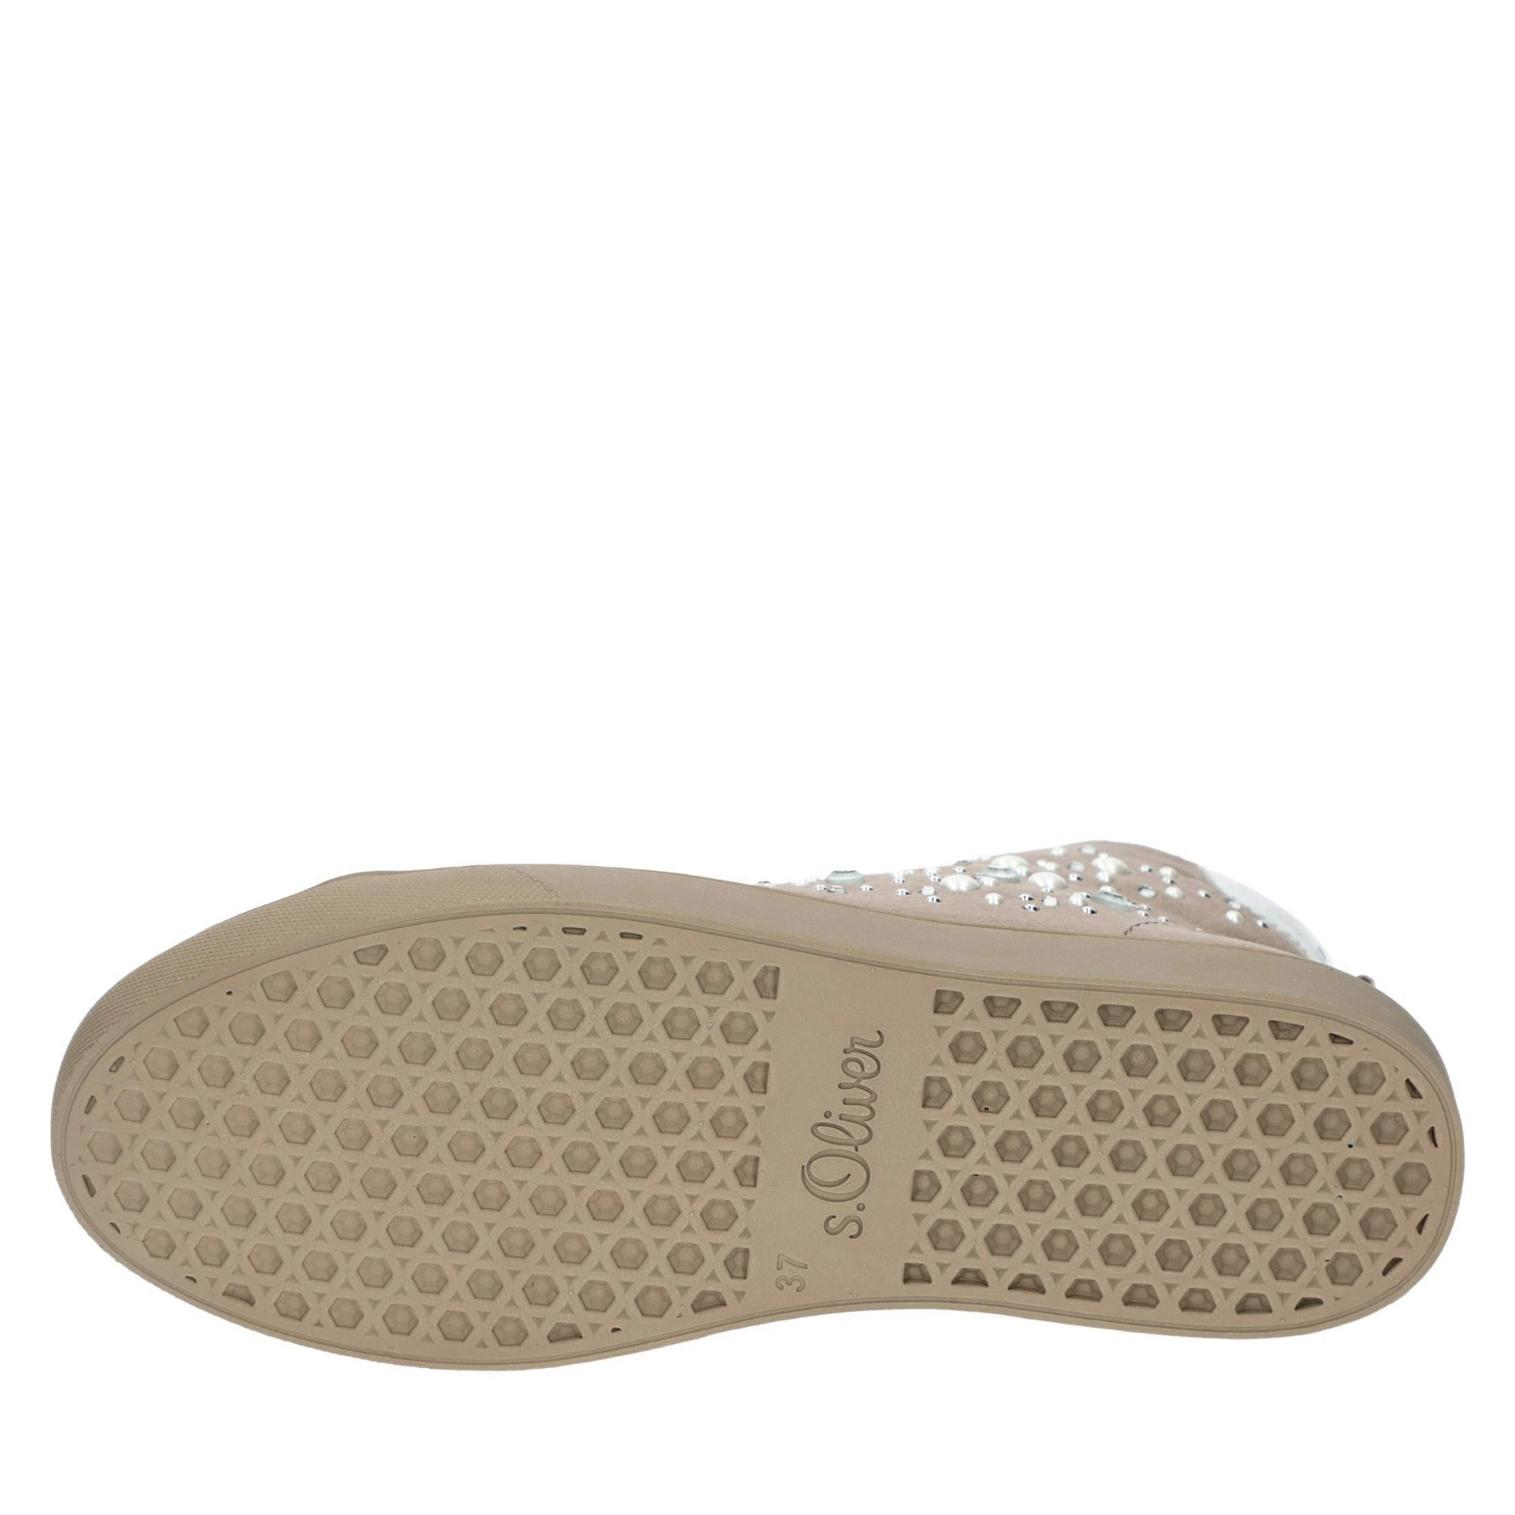 s.Oliver Sneaker taupe in Farbe taupe Sneaker günstig online kaufen 9b48ab